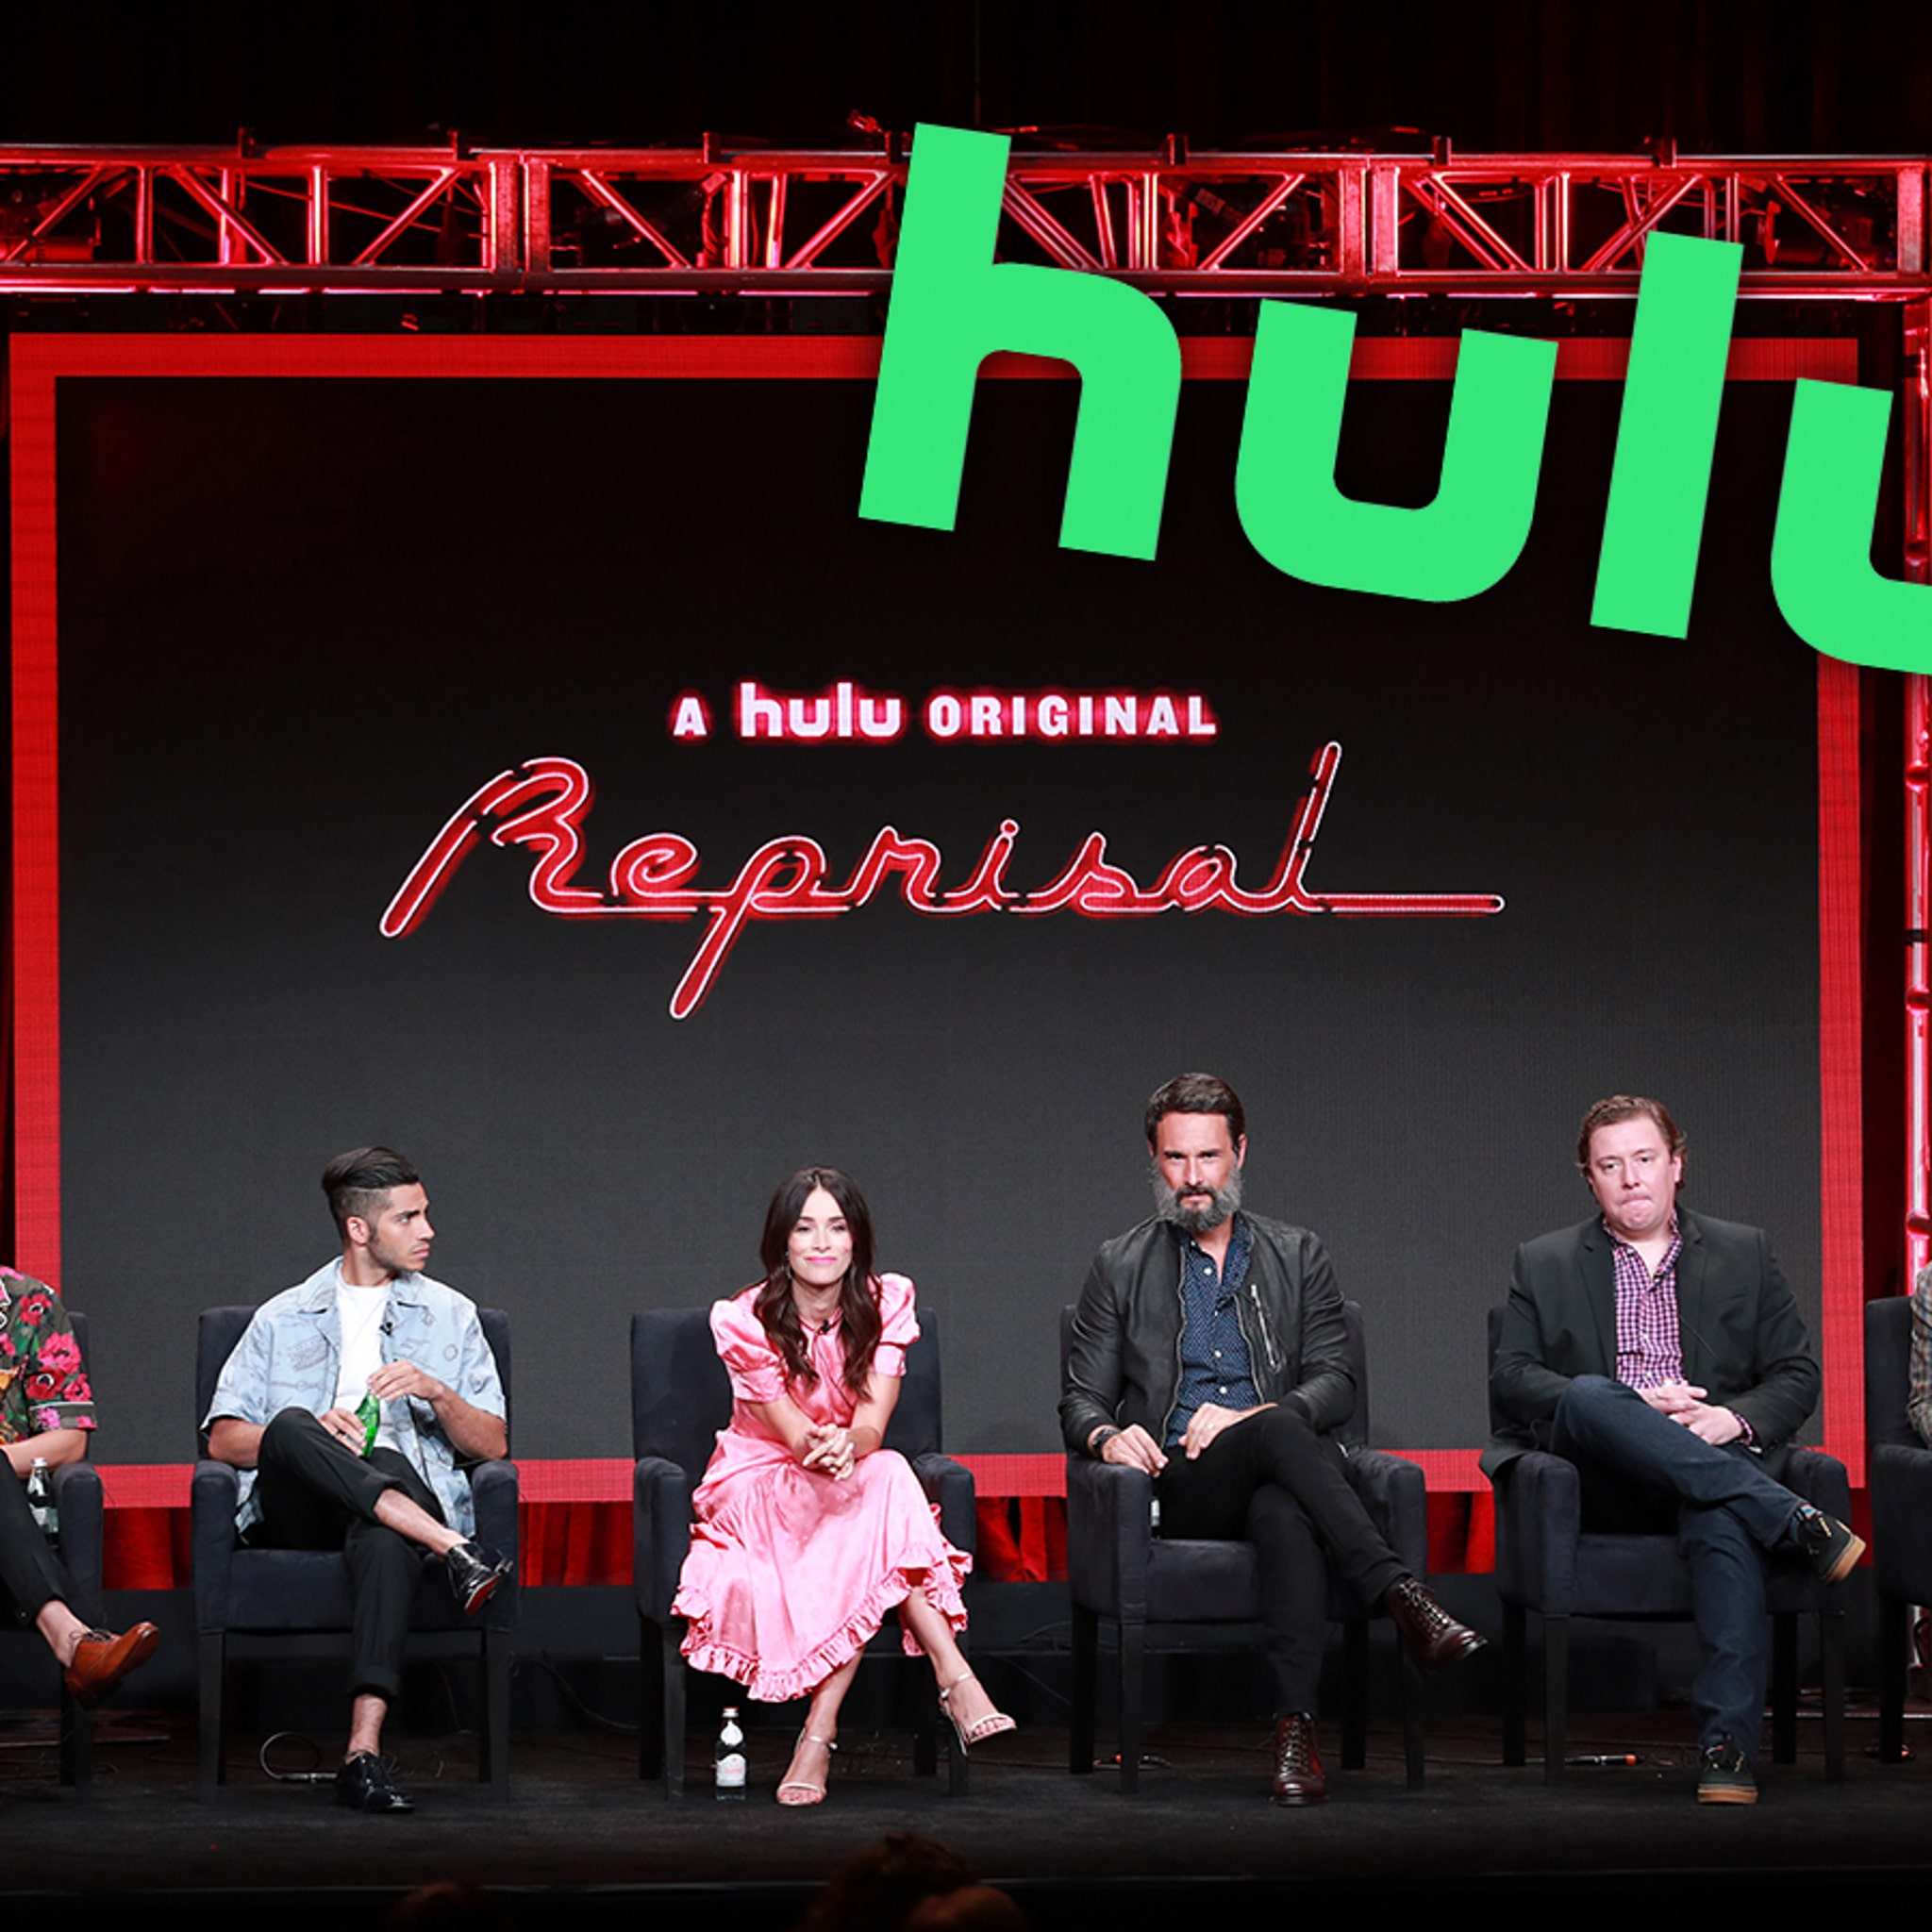 Hulu's New Show 'Reprisal' Stops Production Due to Hurricane Dorian